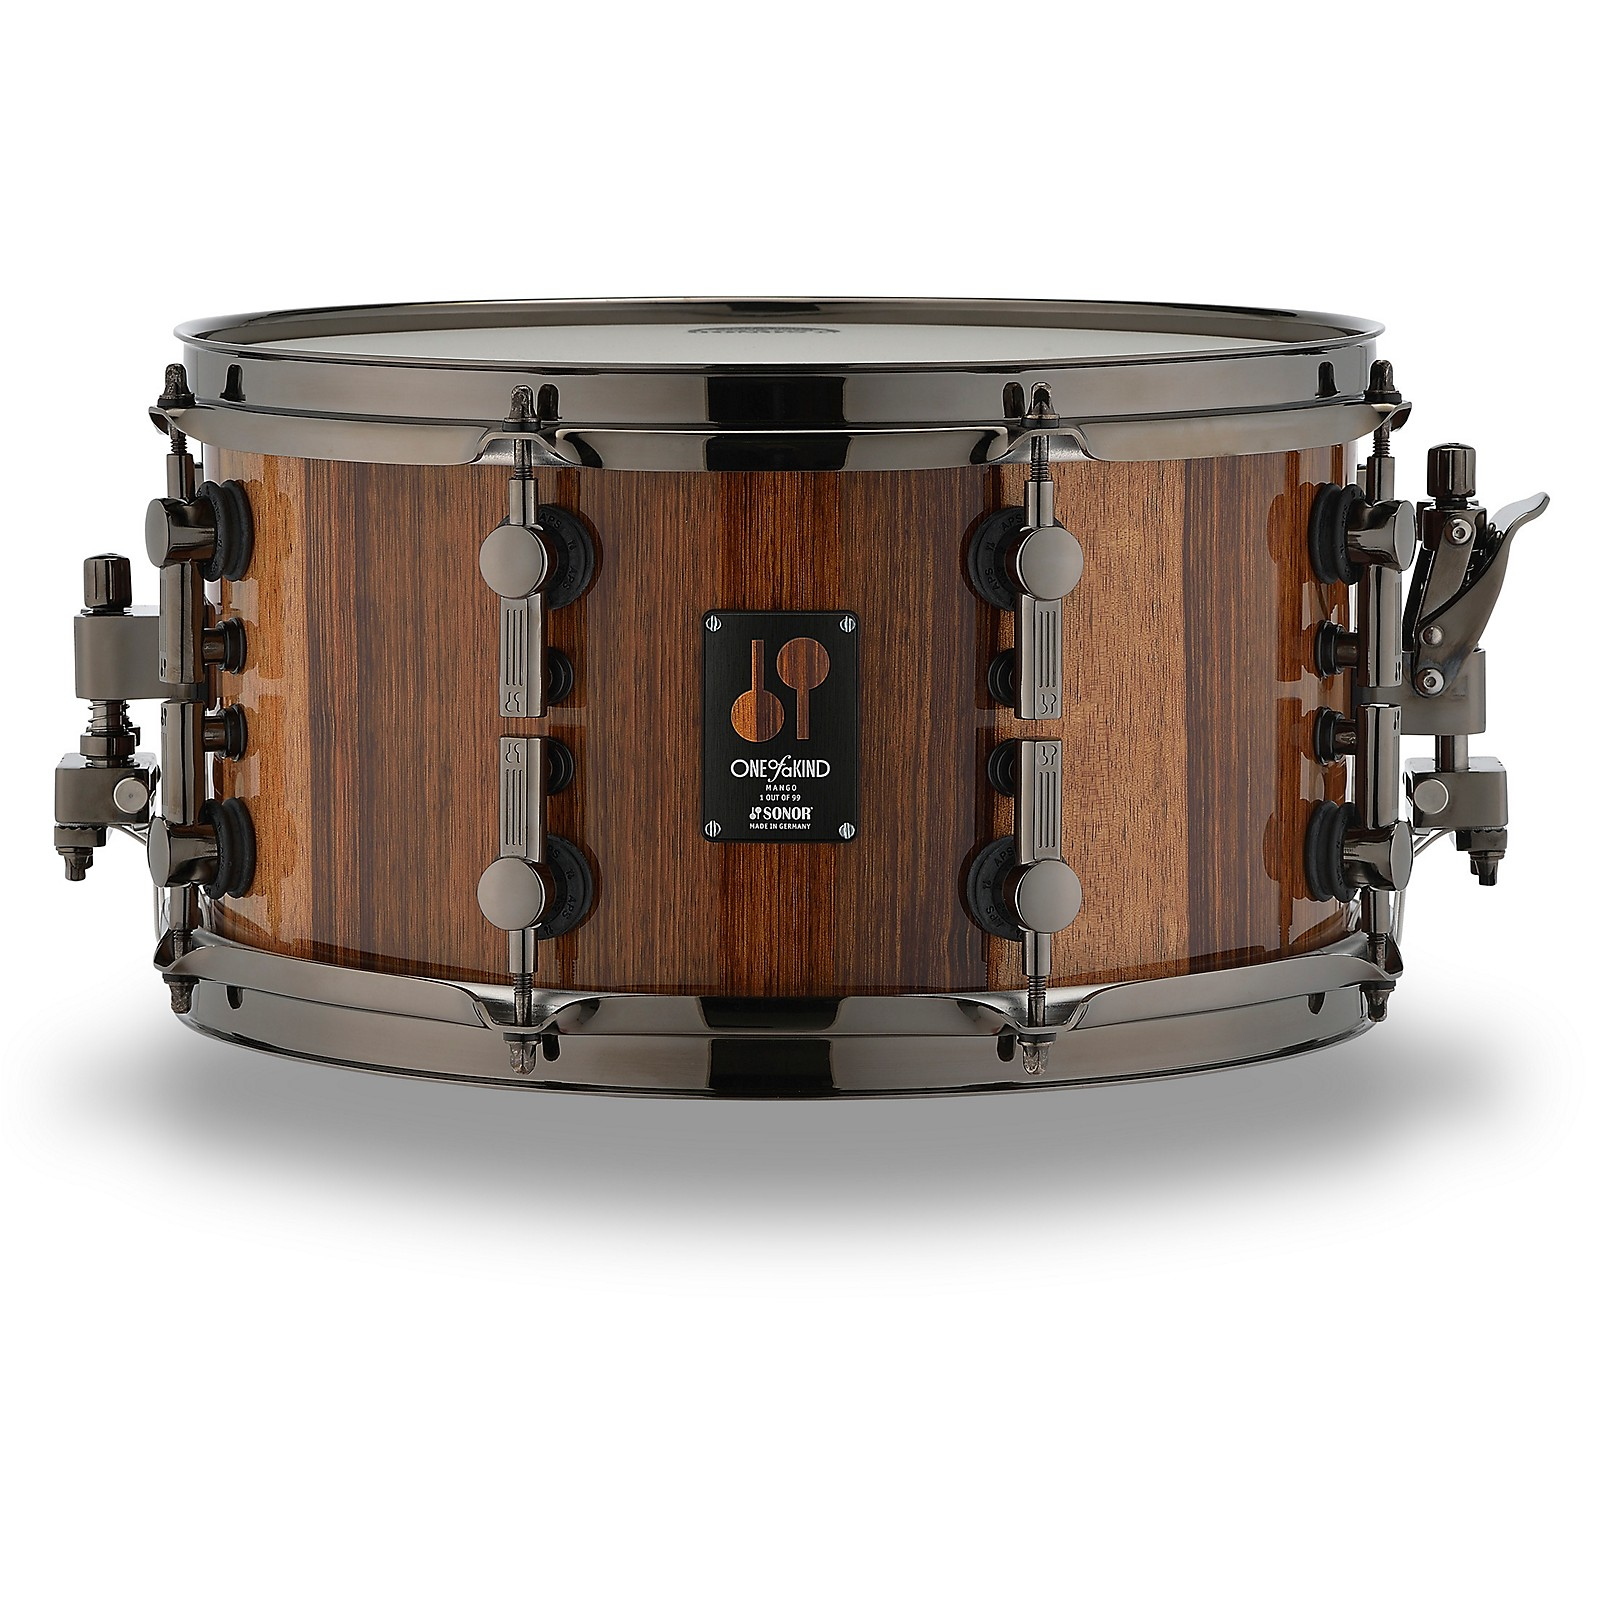 Sonor One of a Kind Mango Edition Maple/Beech/Maple Snare Drum